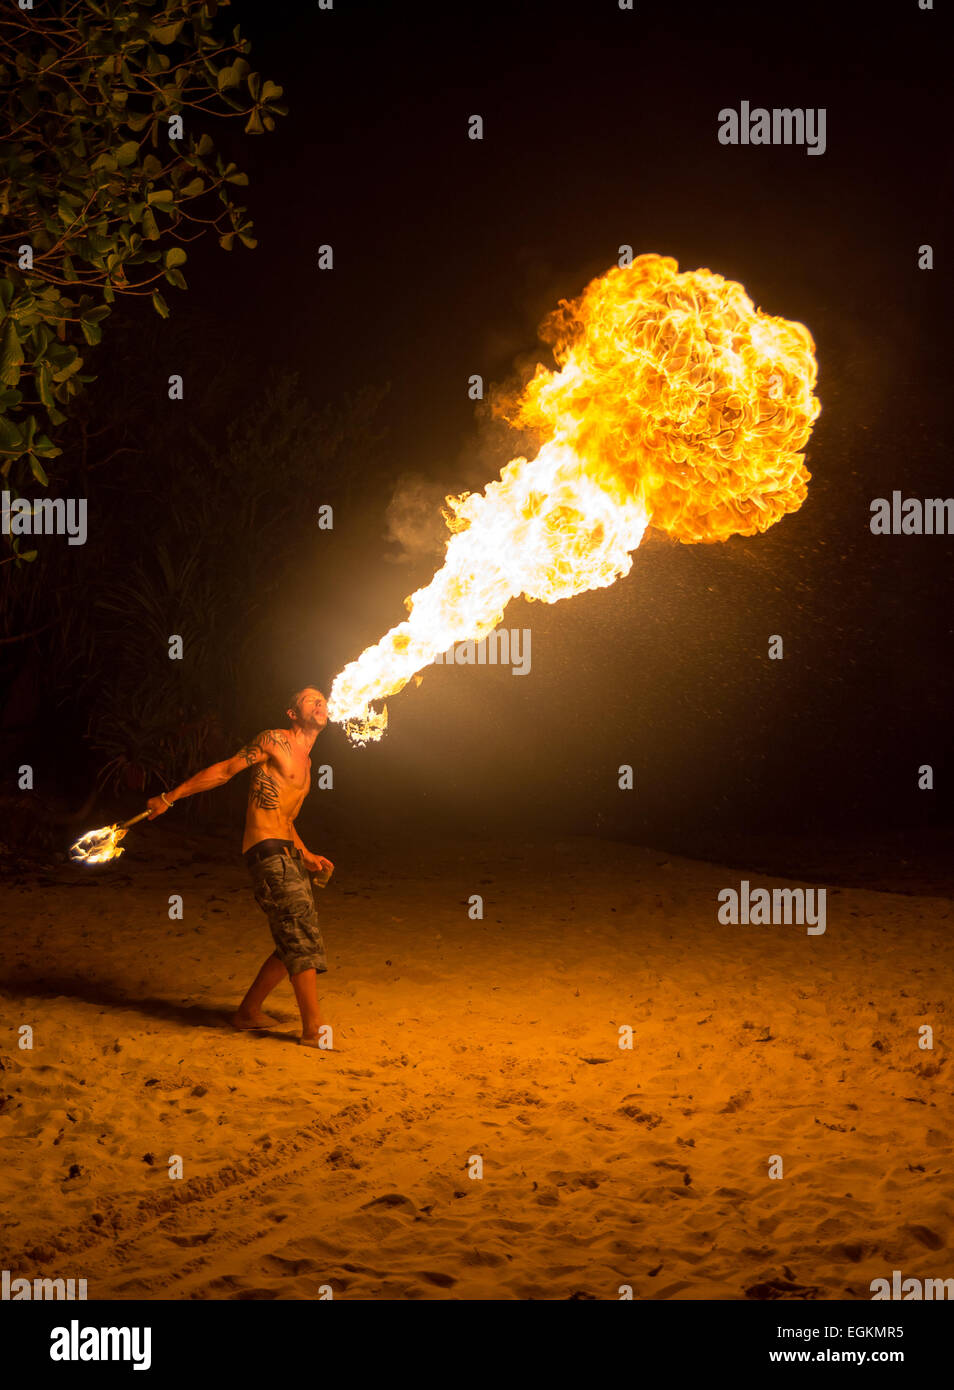 Night Fire Show, Turtle Bay resort, Perhentian islands, Malaysia - Stock Image